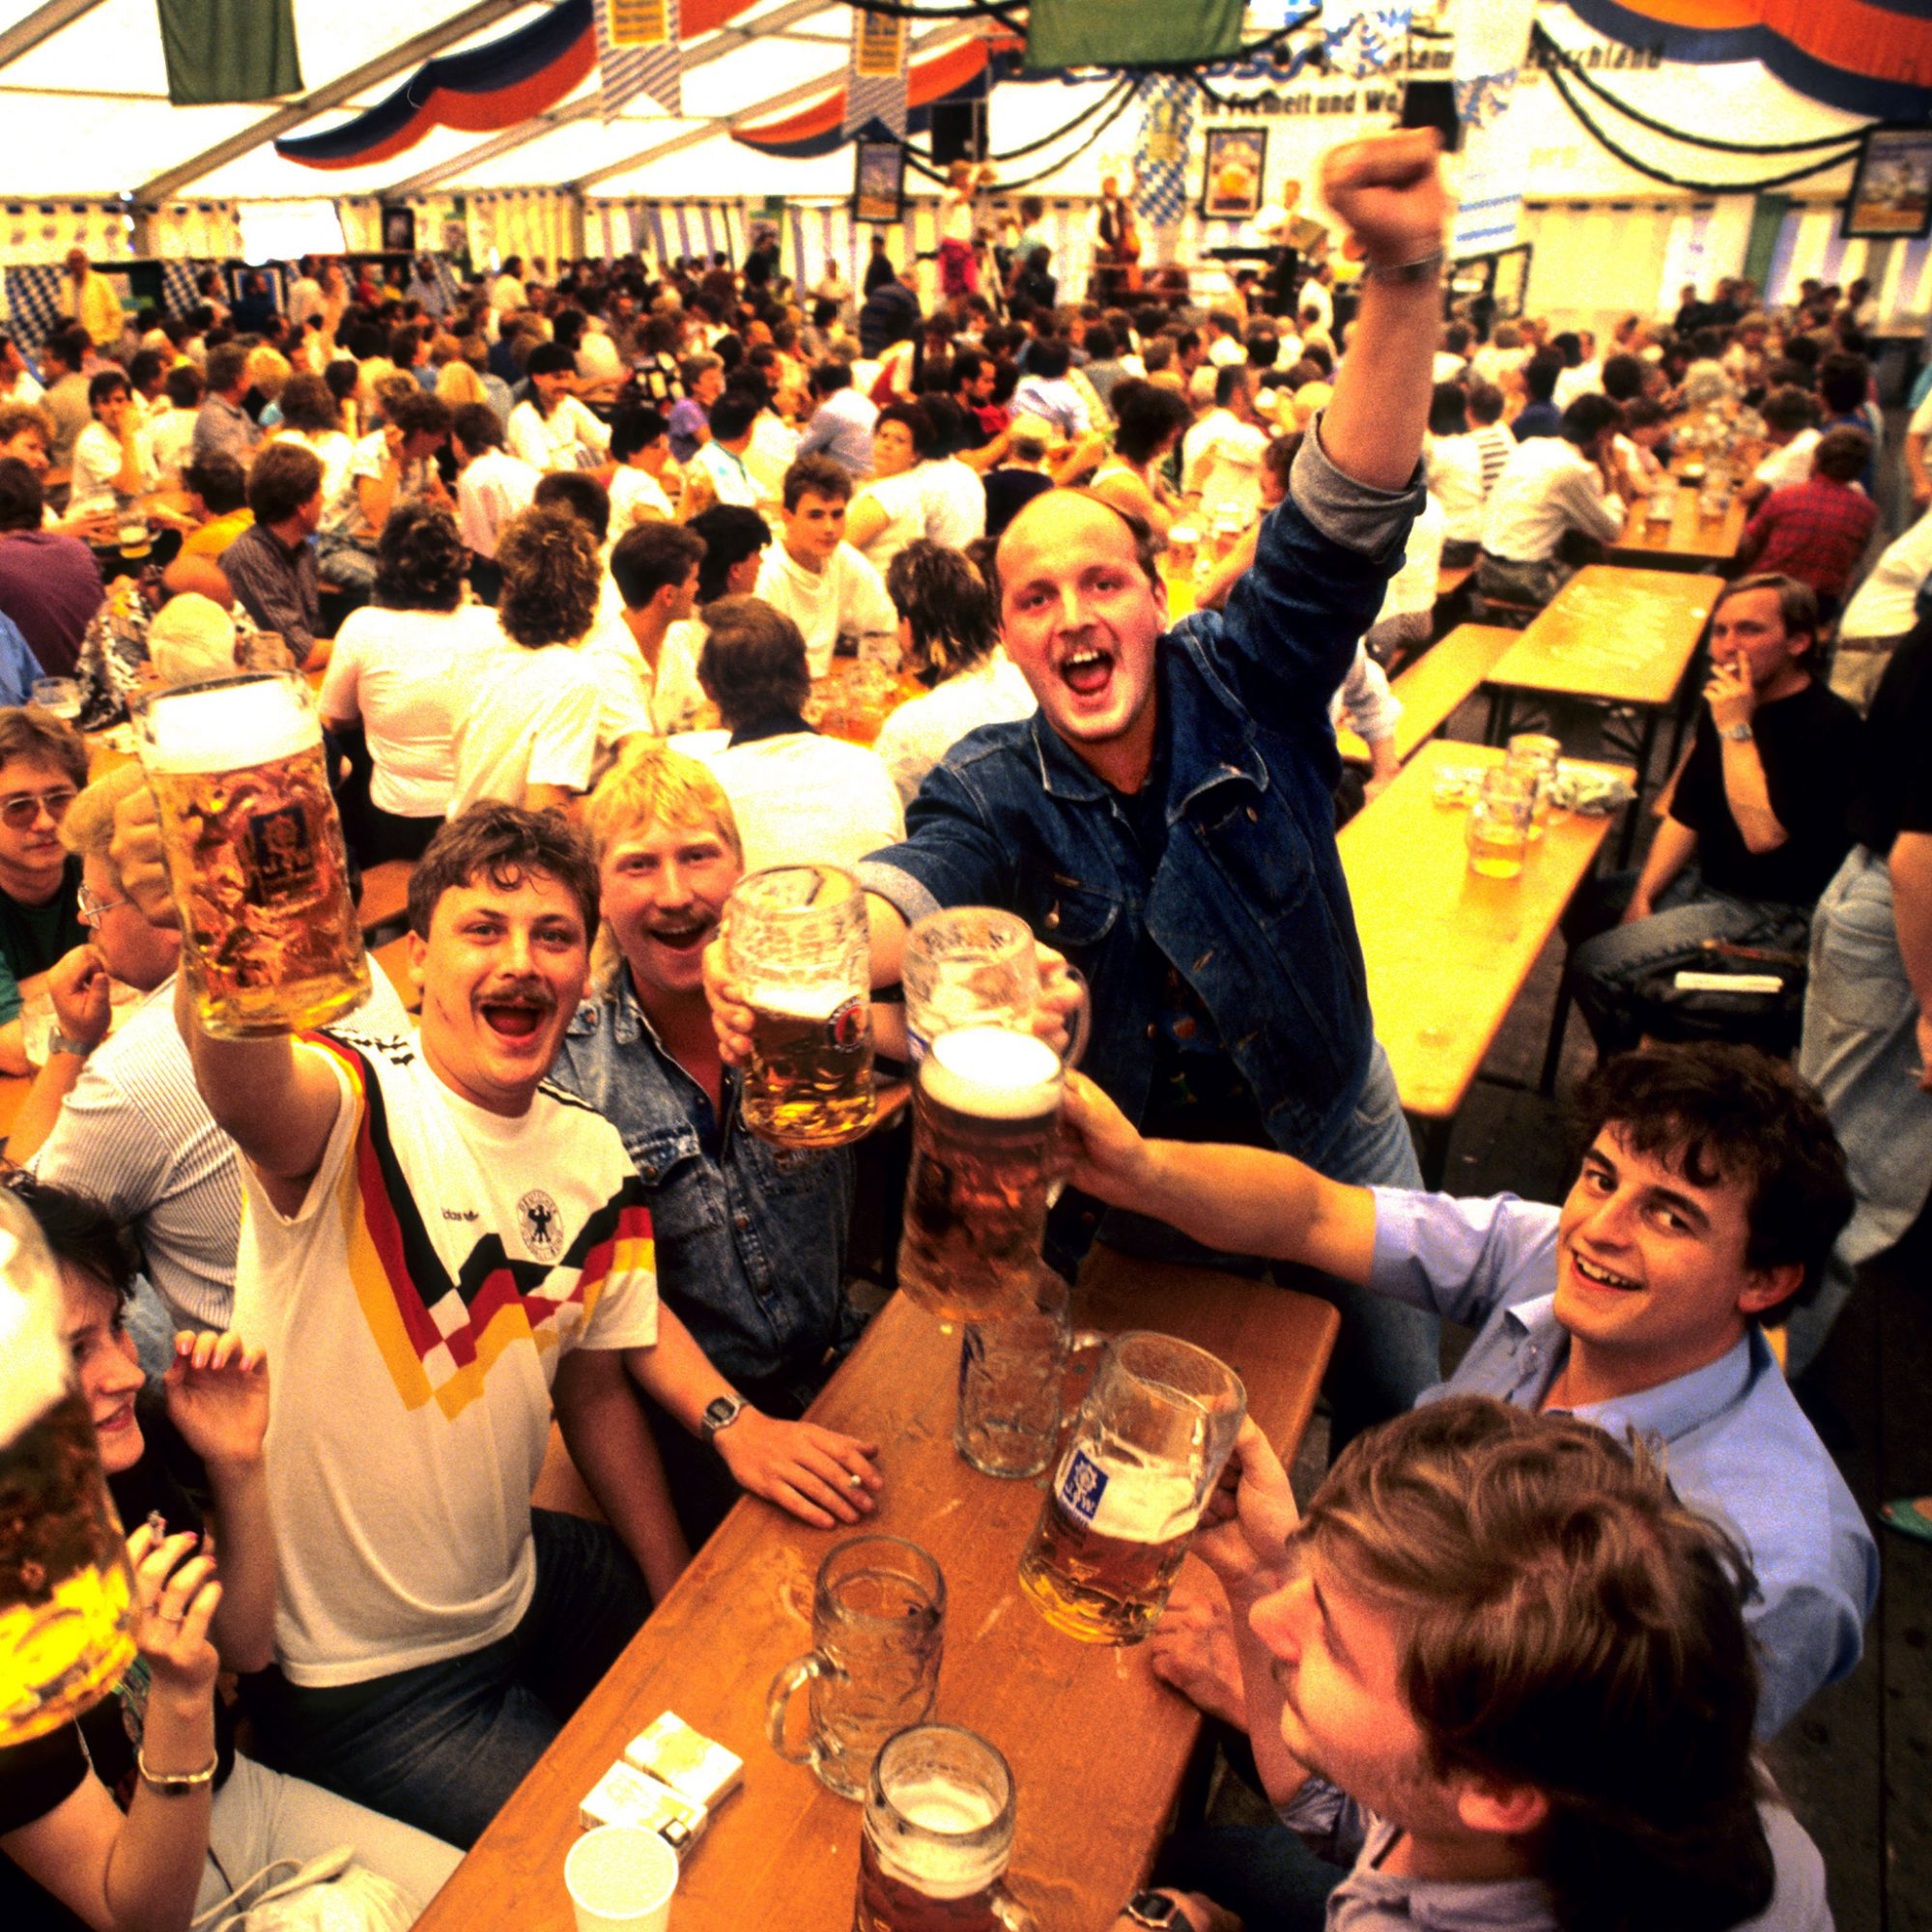 FWX 5 PEOPLE YOU SEE AT BEER FESTIVALS